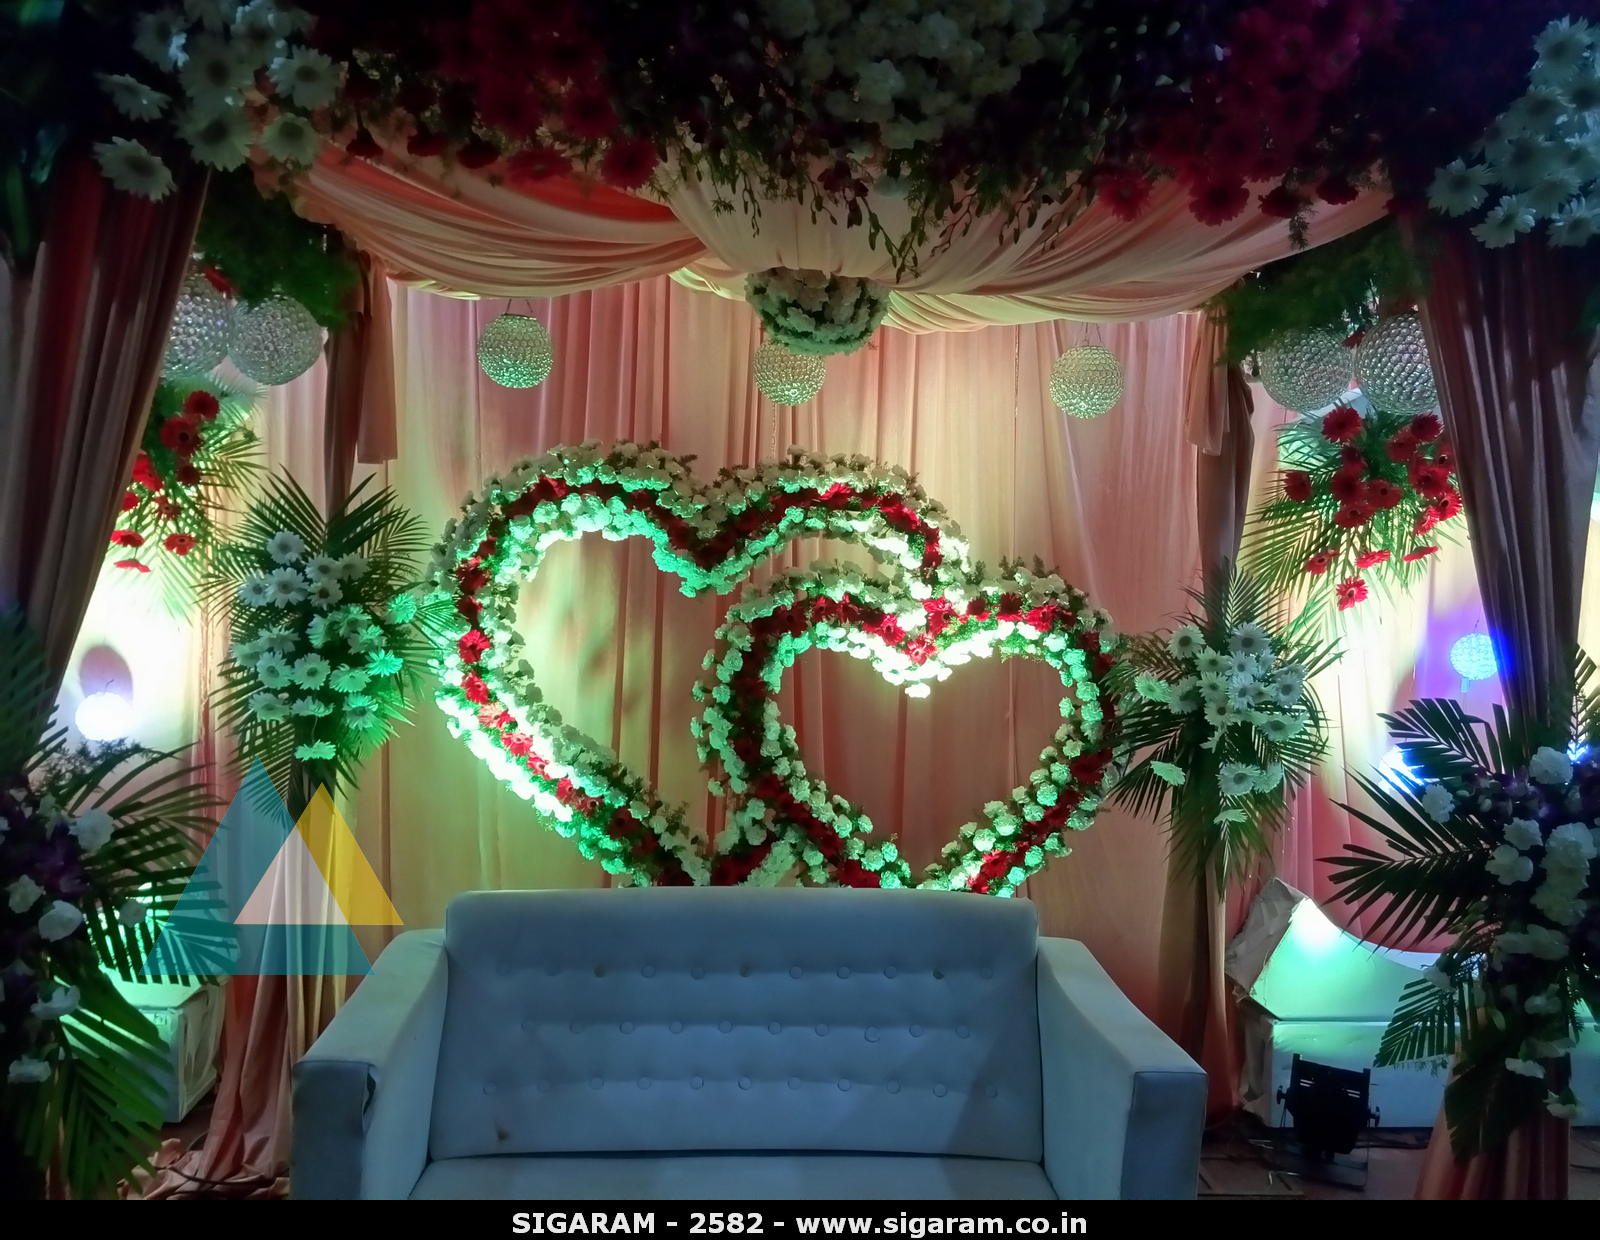 Wedding Decorations In Pondicherry Sigaram Wedding Decorators